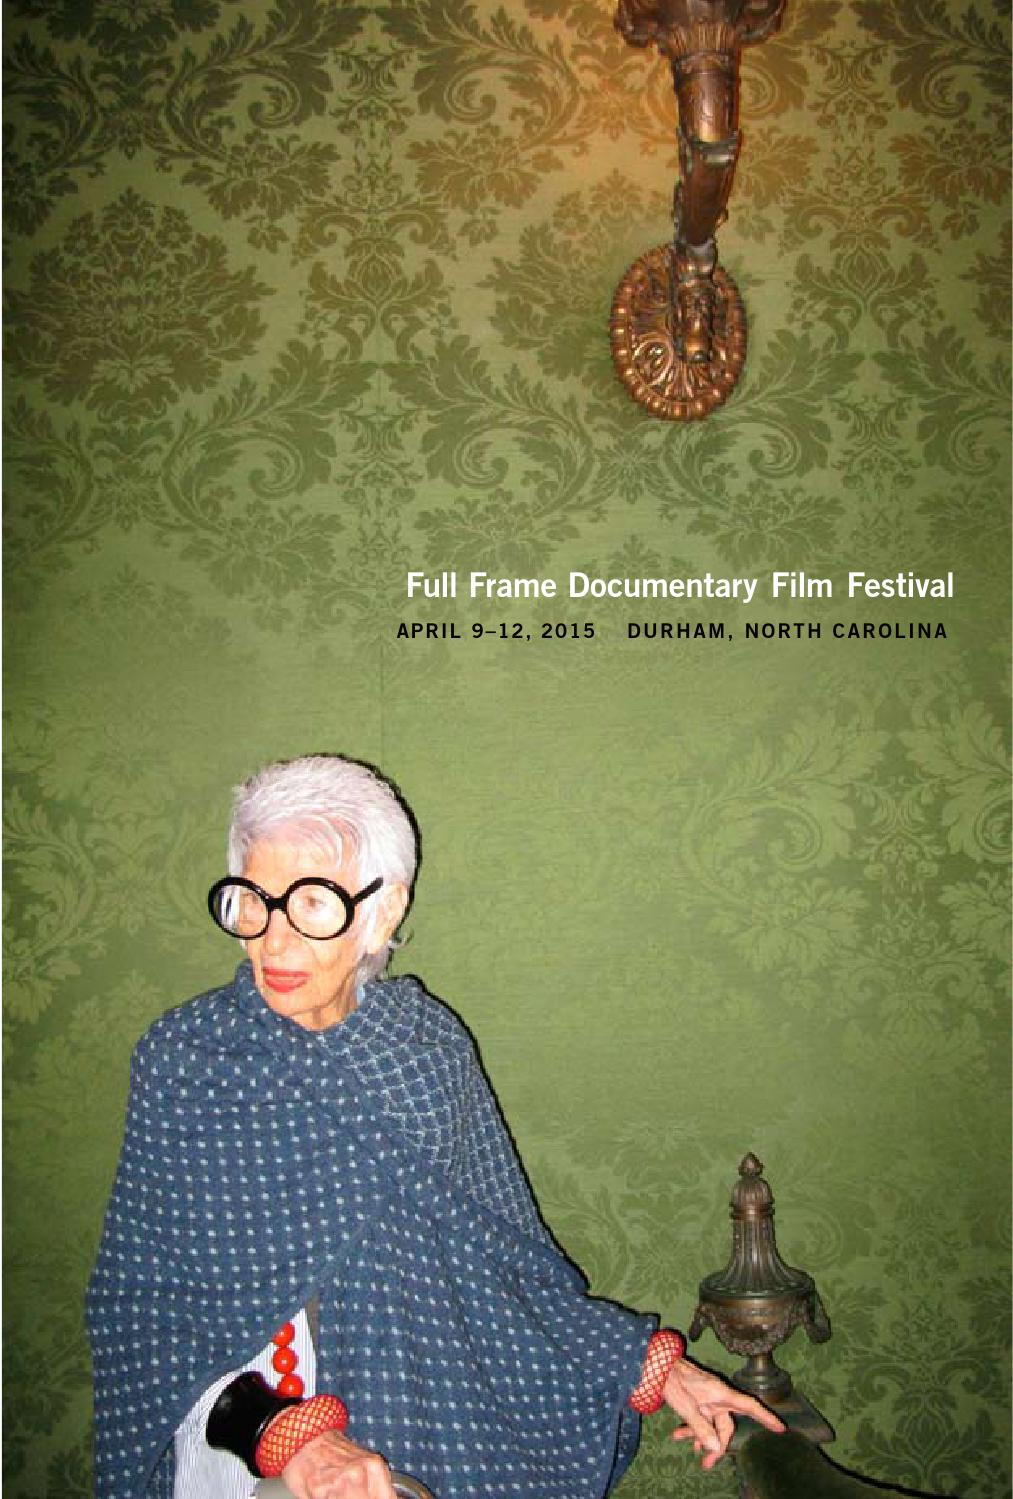 2015 Full Frame Documentary Film Festival Official Program By Circuit Board Picture Geek Armory Michelle Benham Issuu